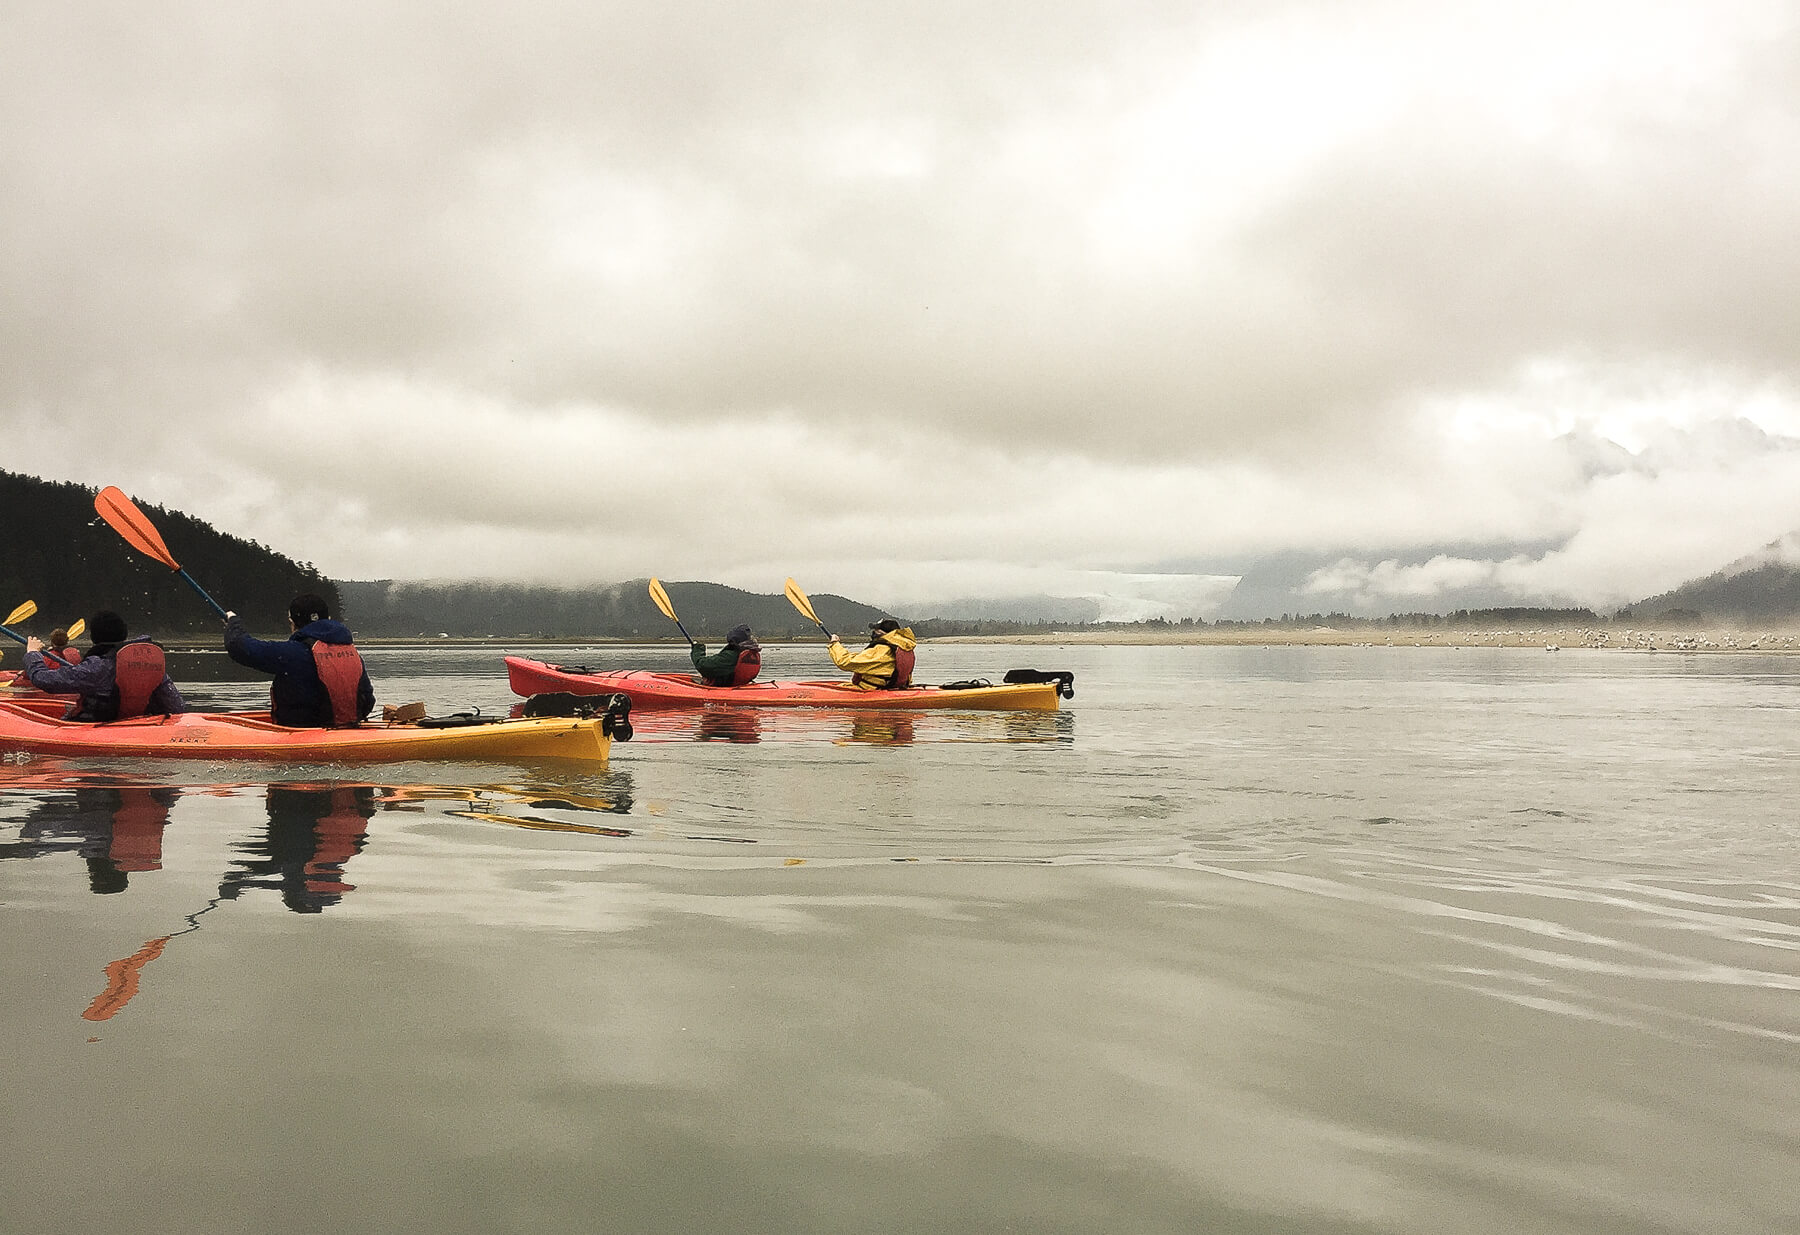 People paddling 2 Sea Kayaks through a still bay